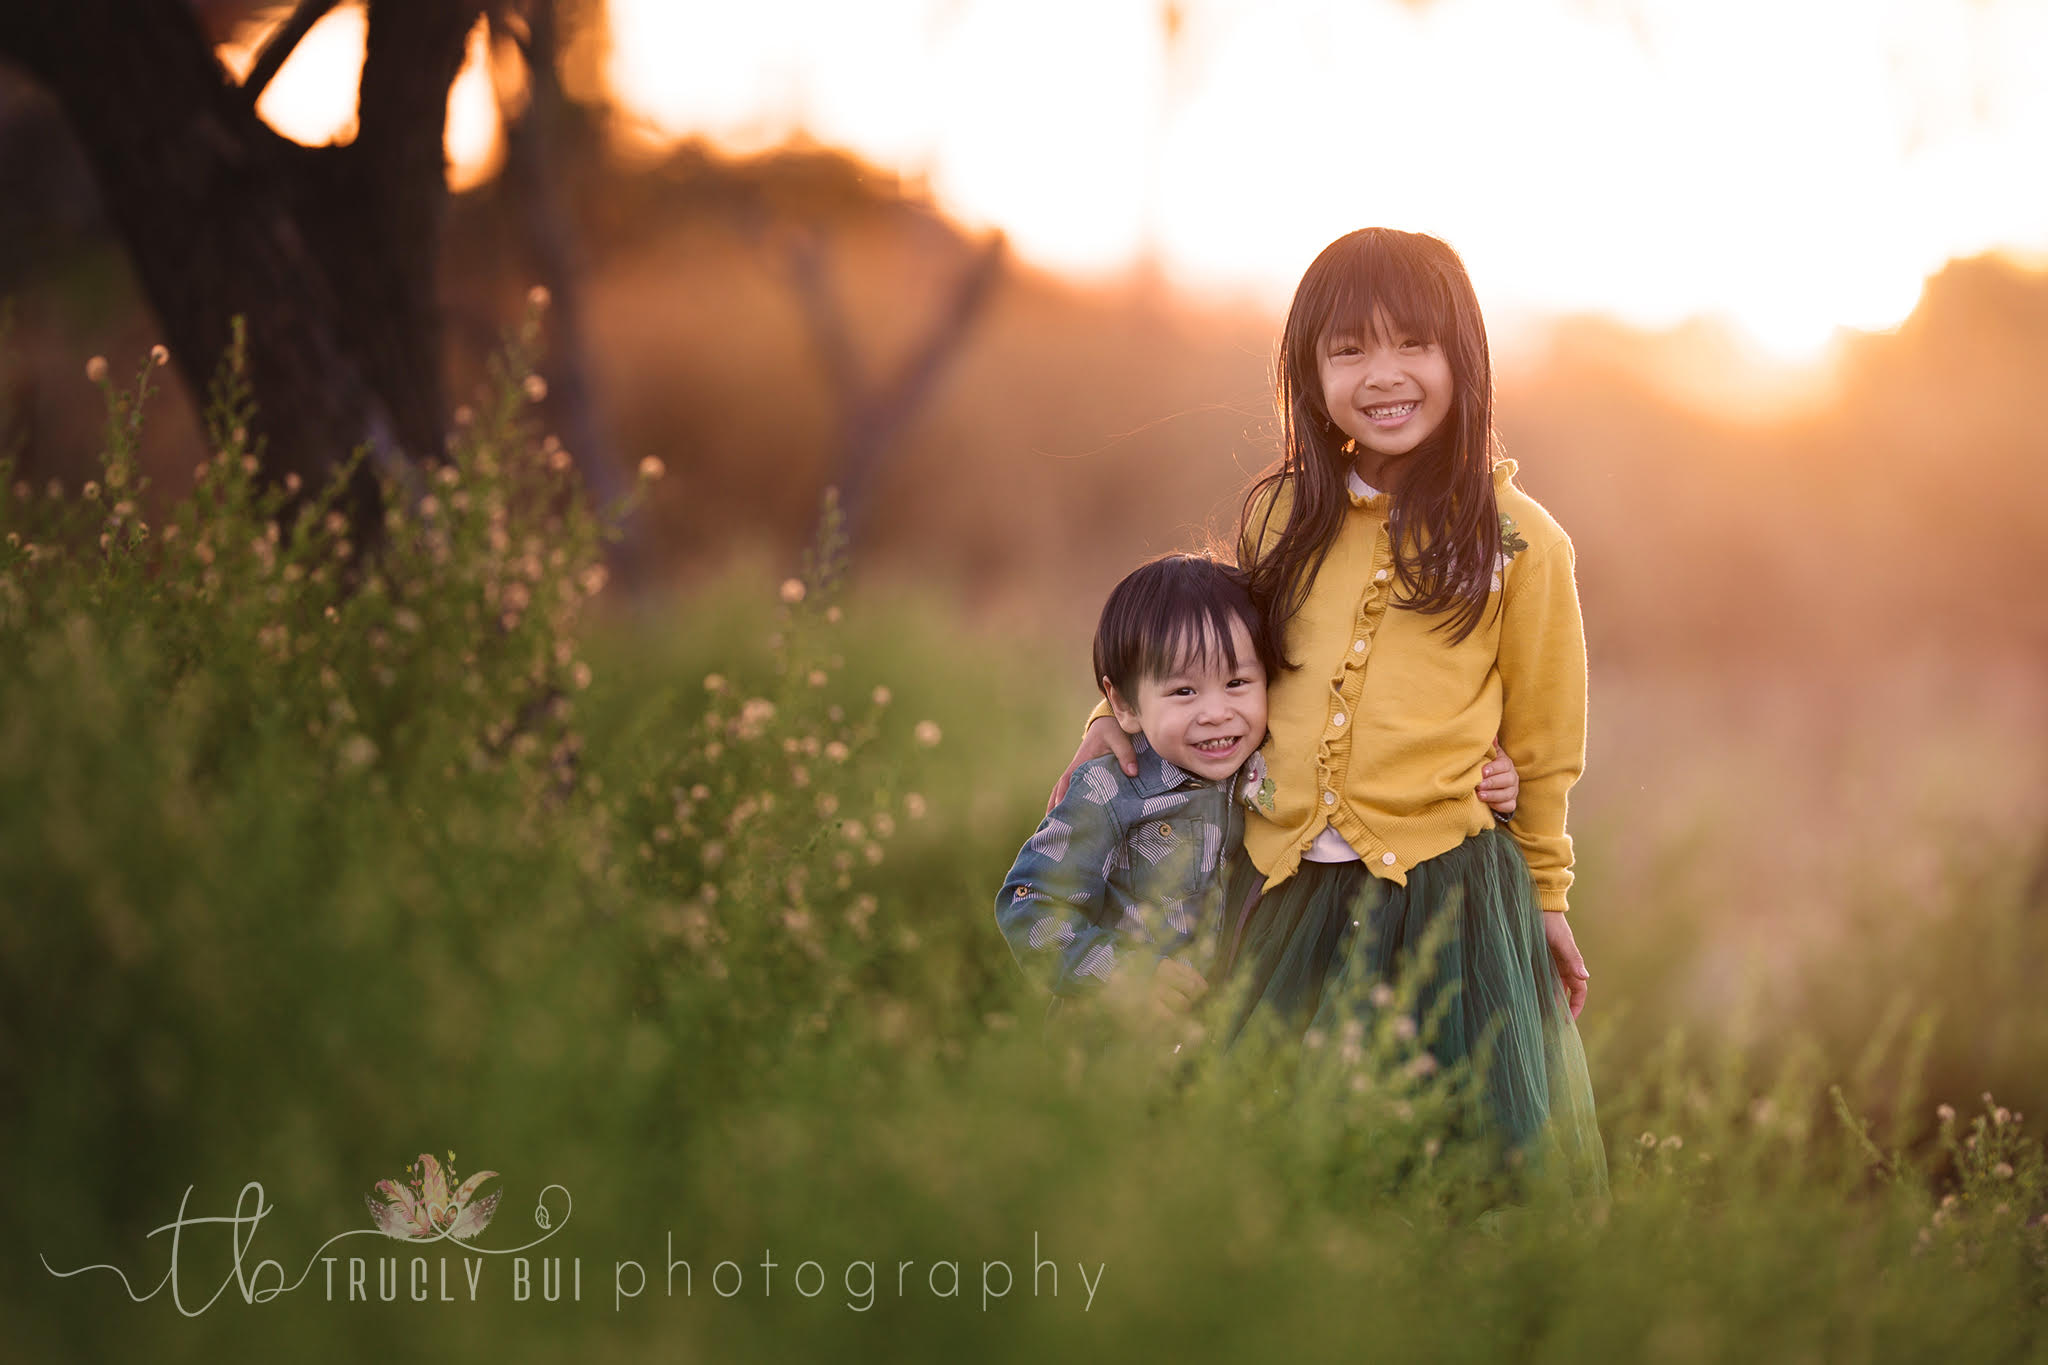 Image submitted by  Trucly Bui Photography